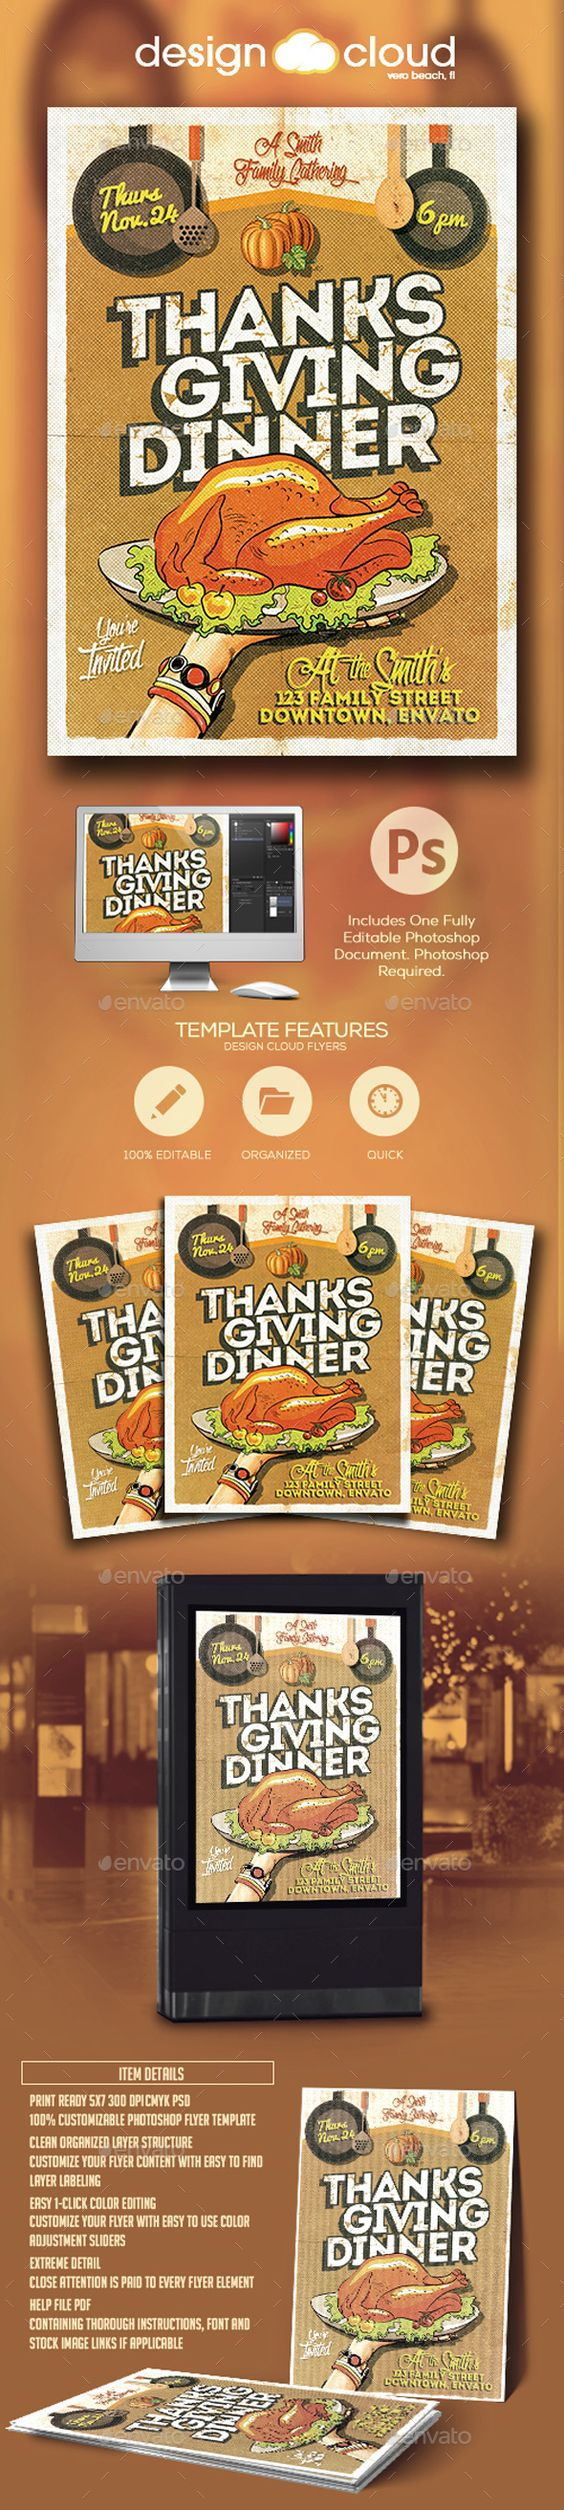 thanksgiving dinner invitation flyer template flyer template thanksgiving dinner invitation flyer template photoshop psd quality retro 10141